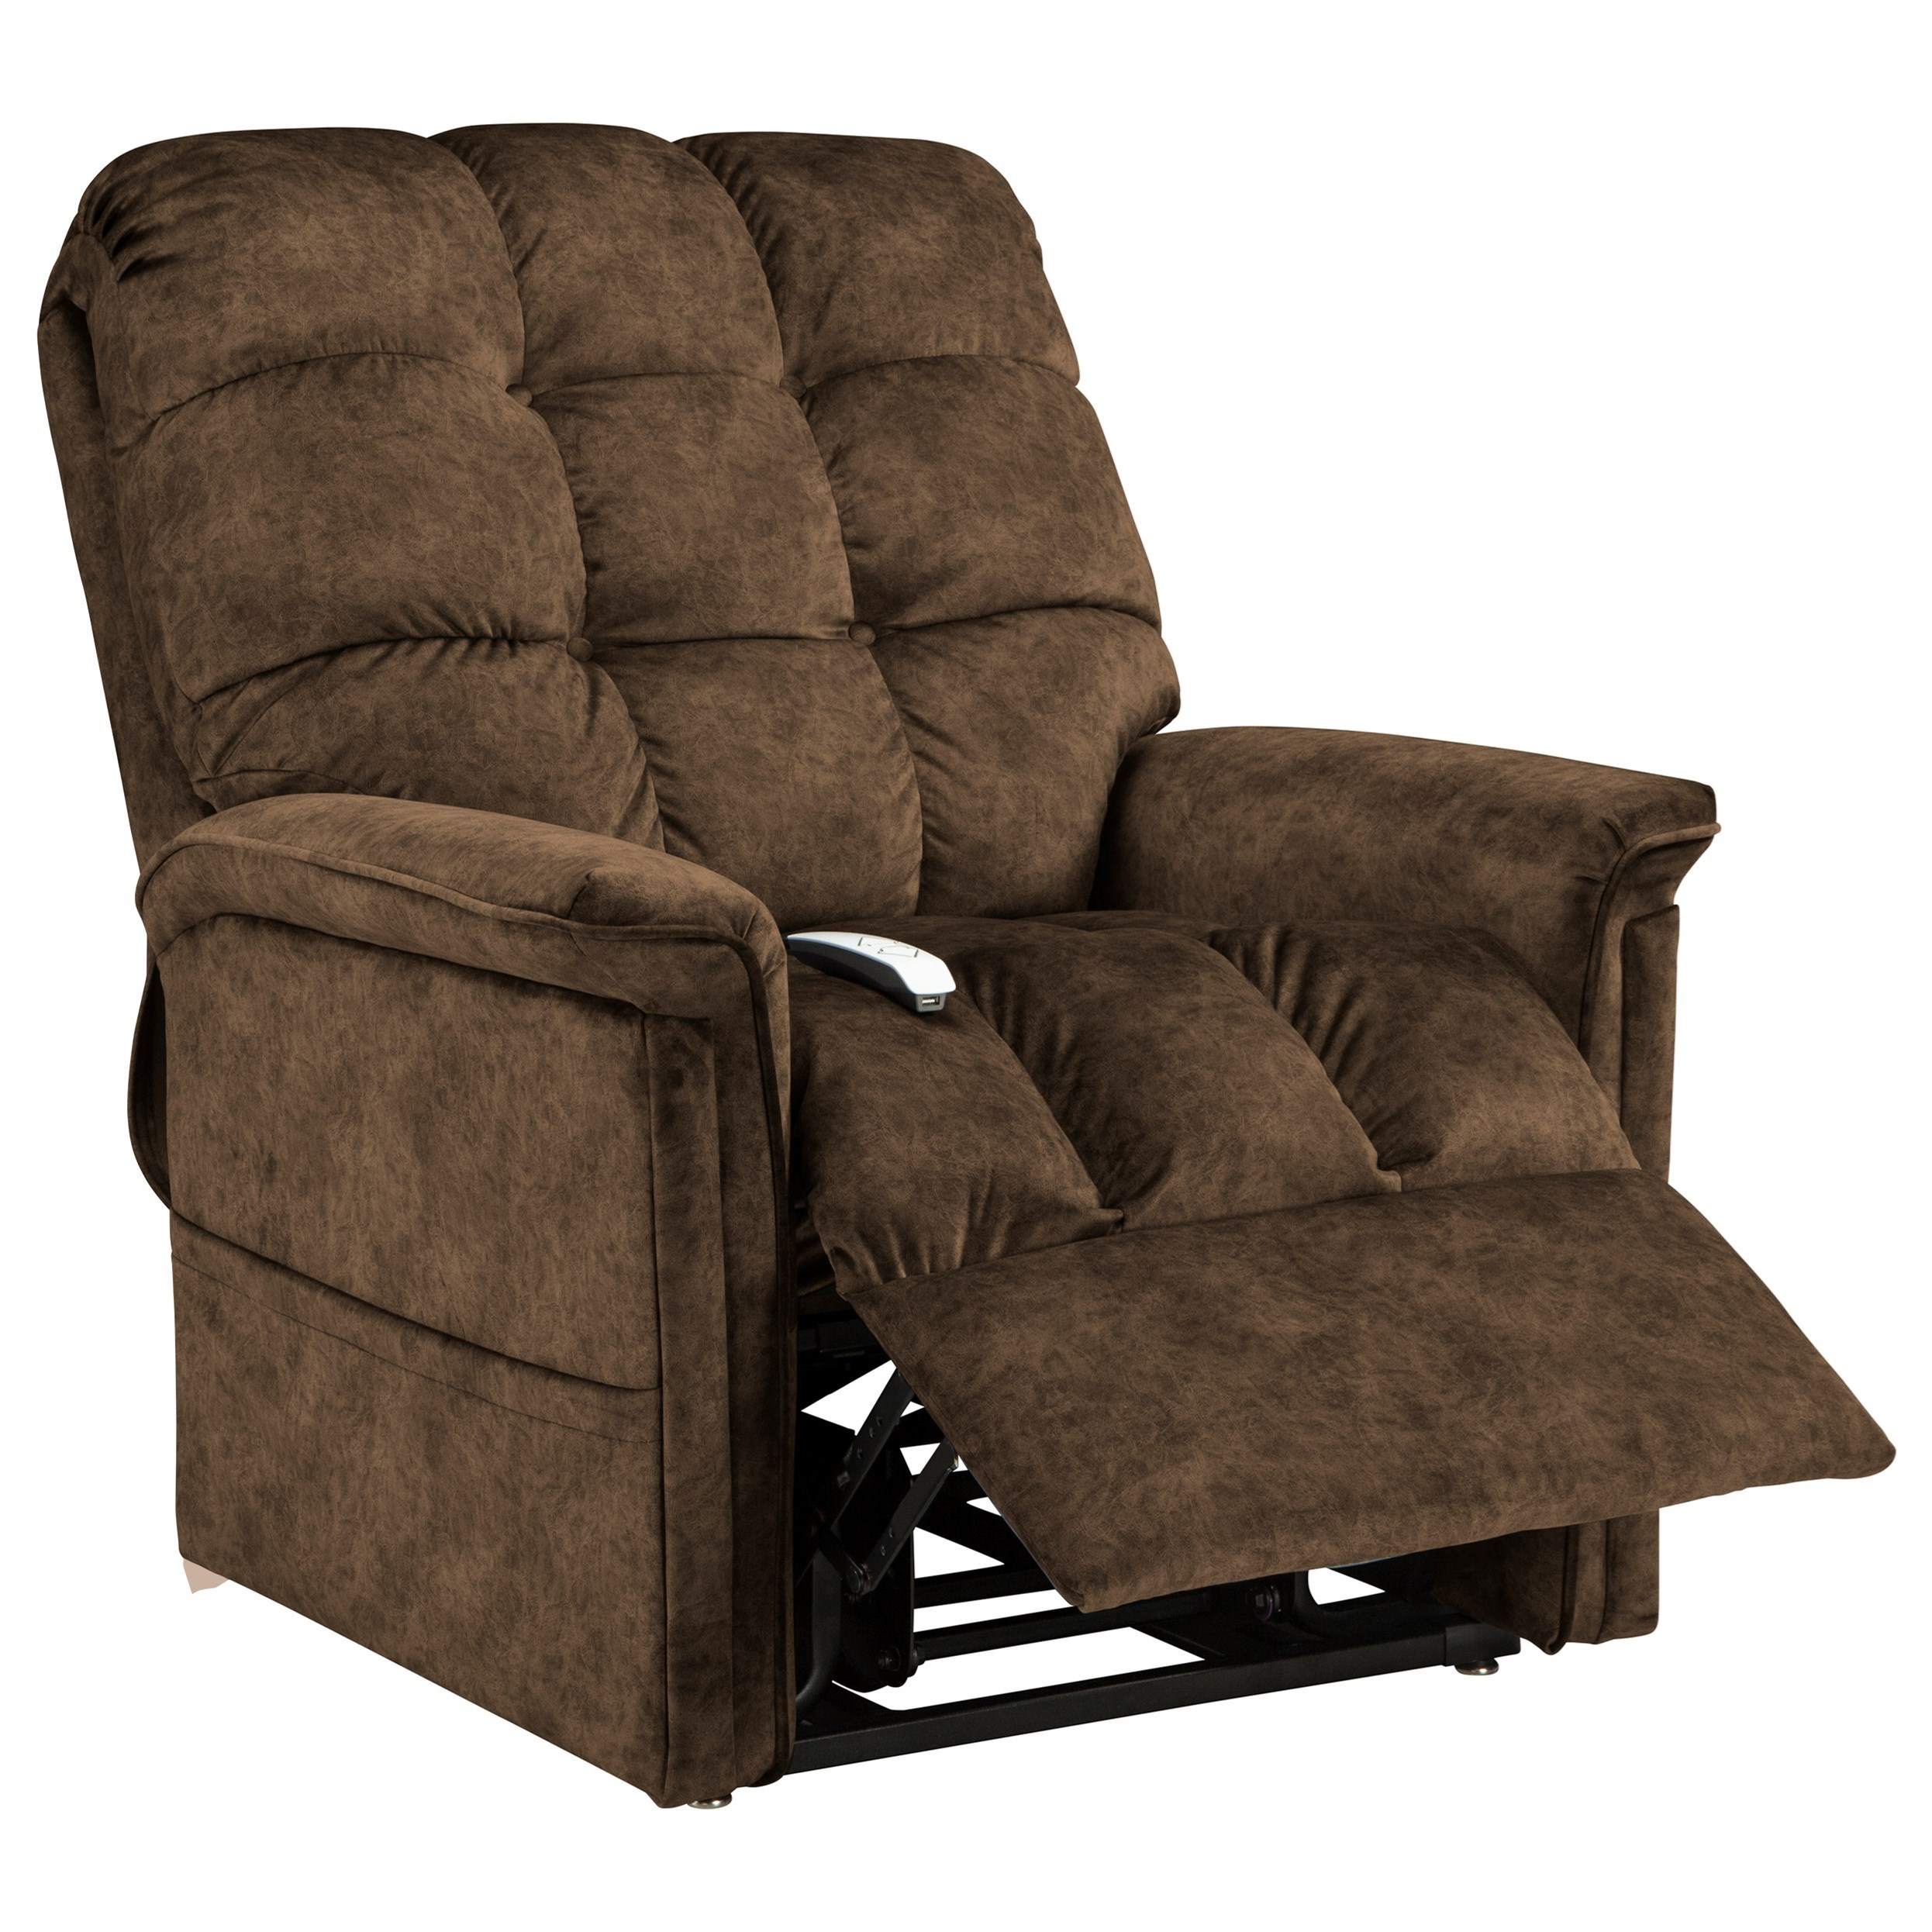 Lift Chairs 3-Position Reclining Lift Chair at Ruby Gordon Home